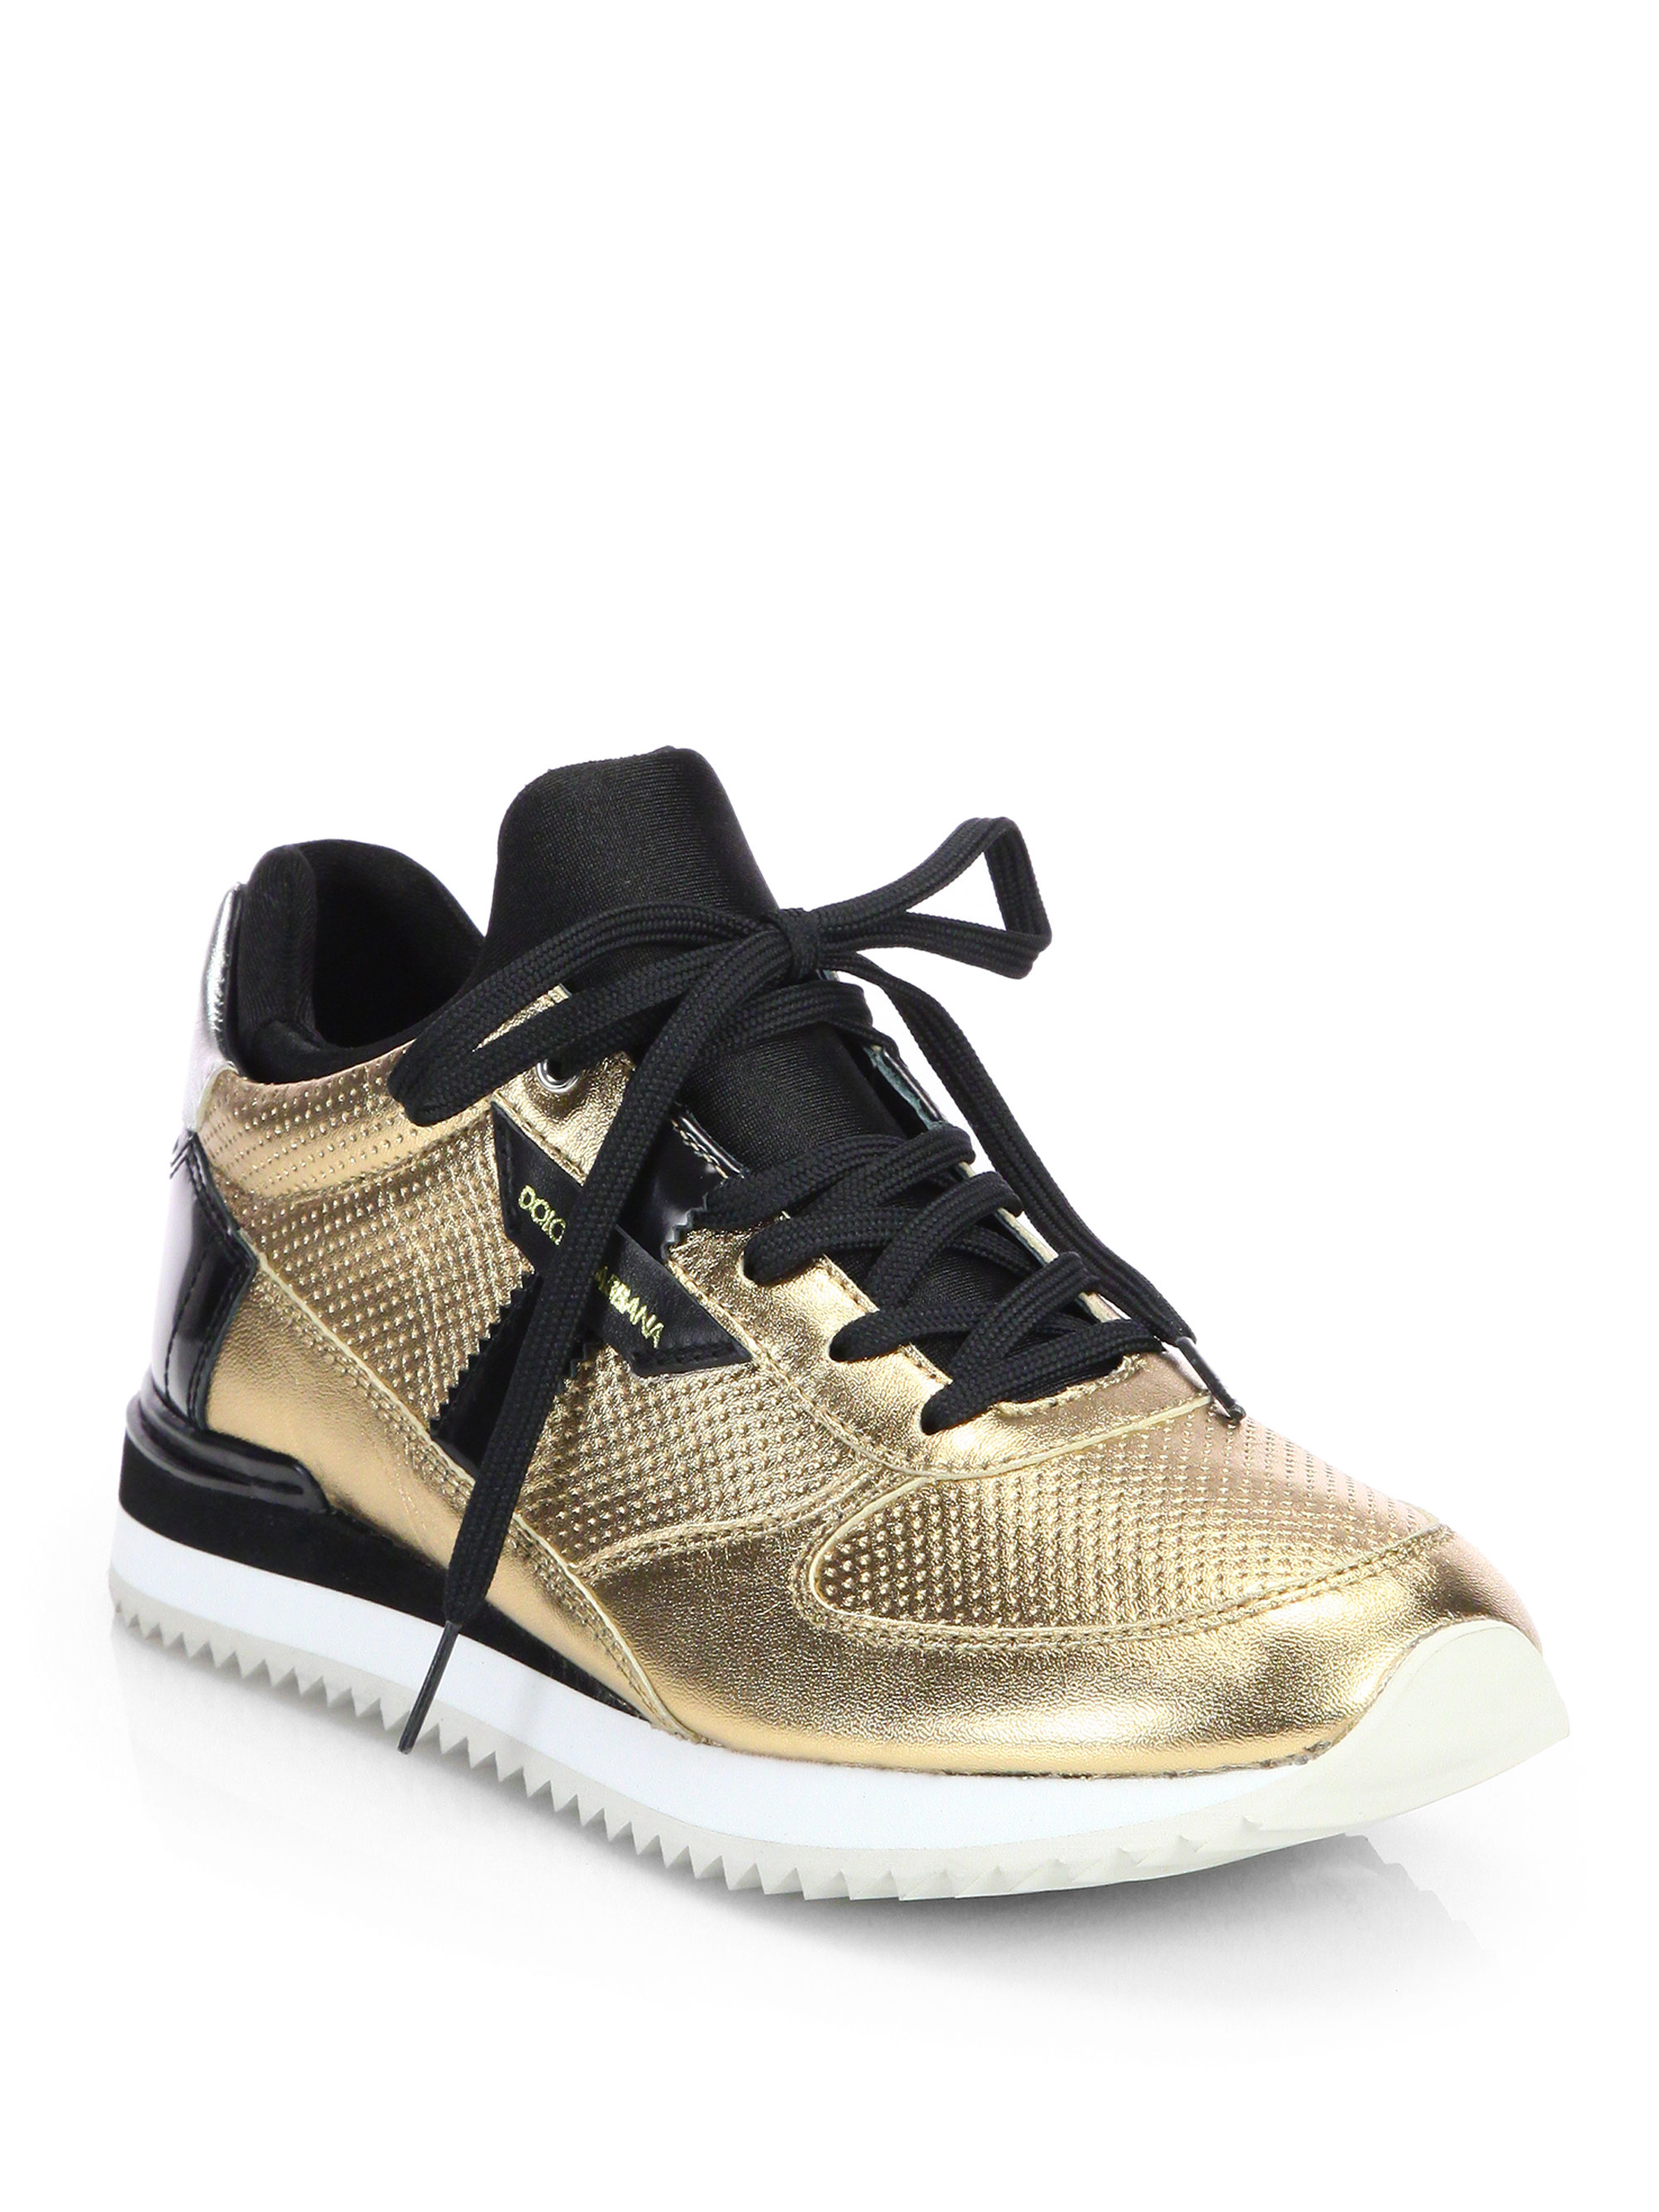 dolce gabbana metallic patent leather lace up sneakers. Black Bedroom Furniture Sets. Home Design Ideas